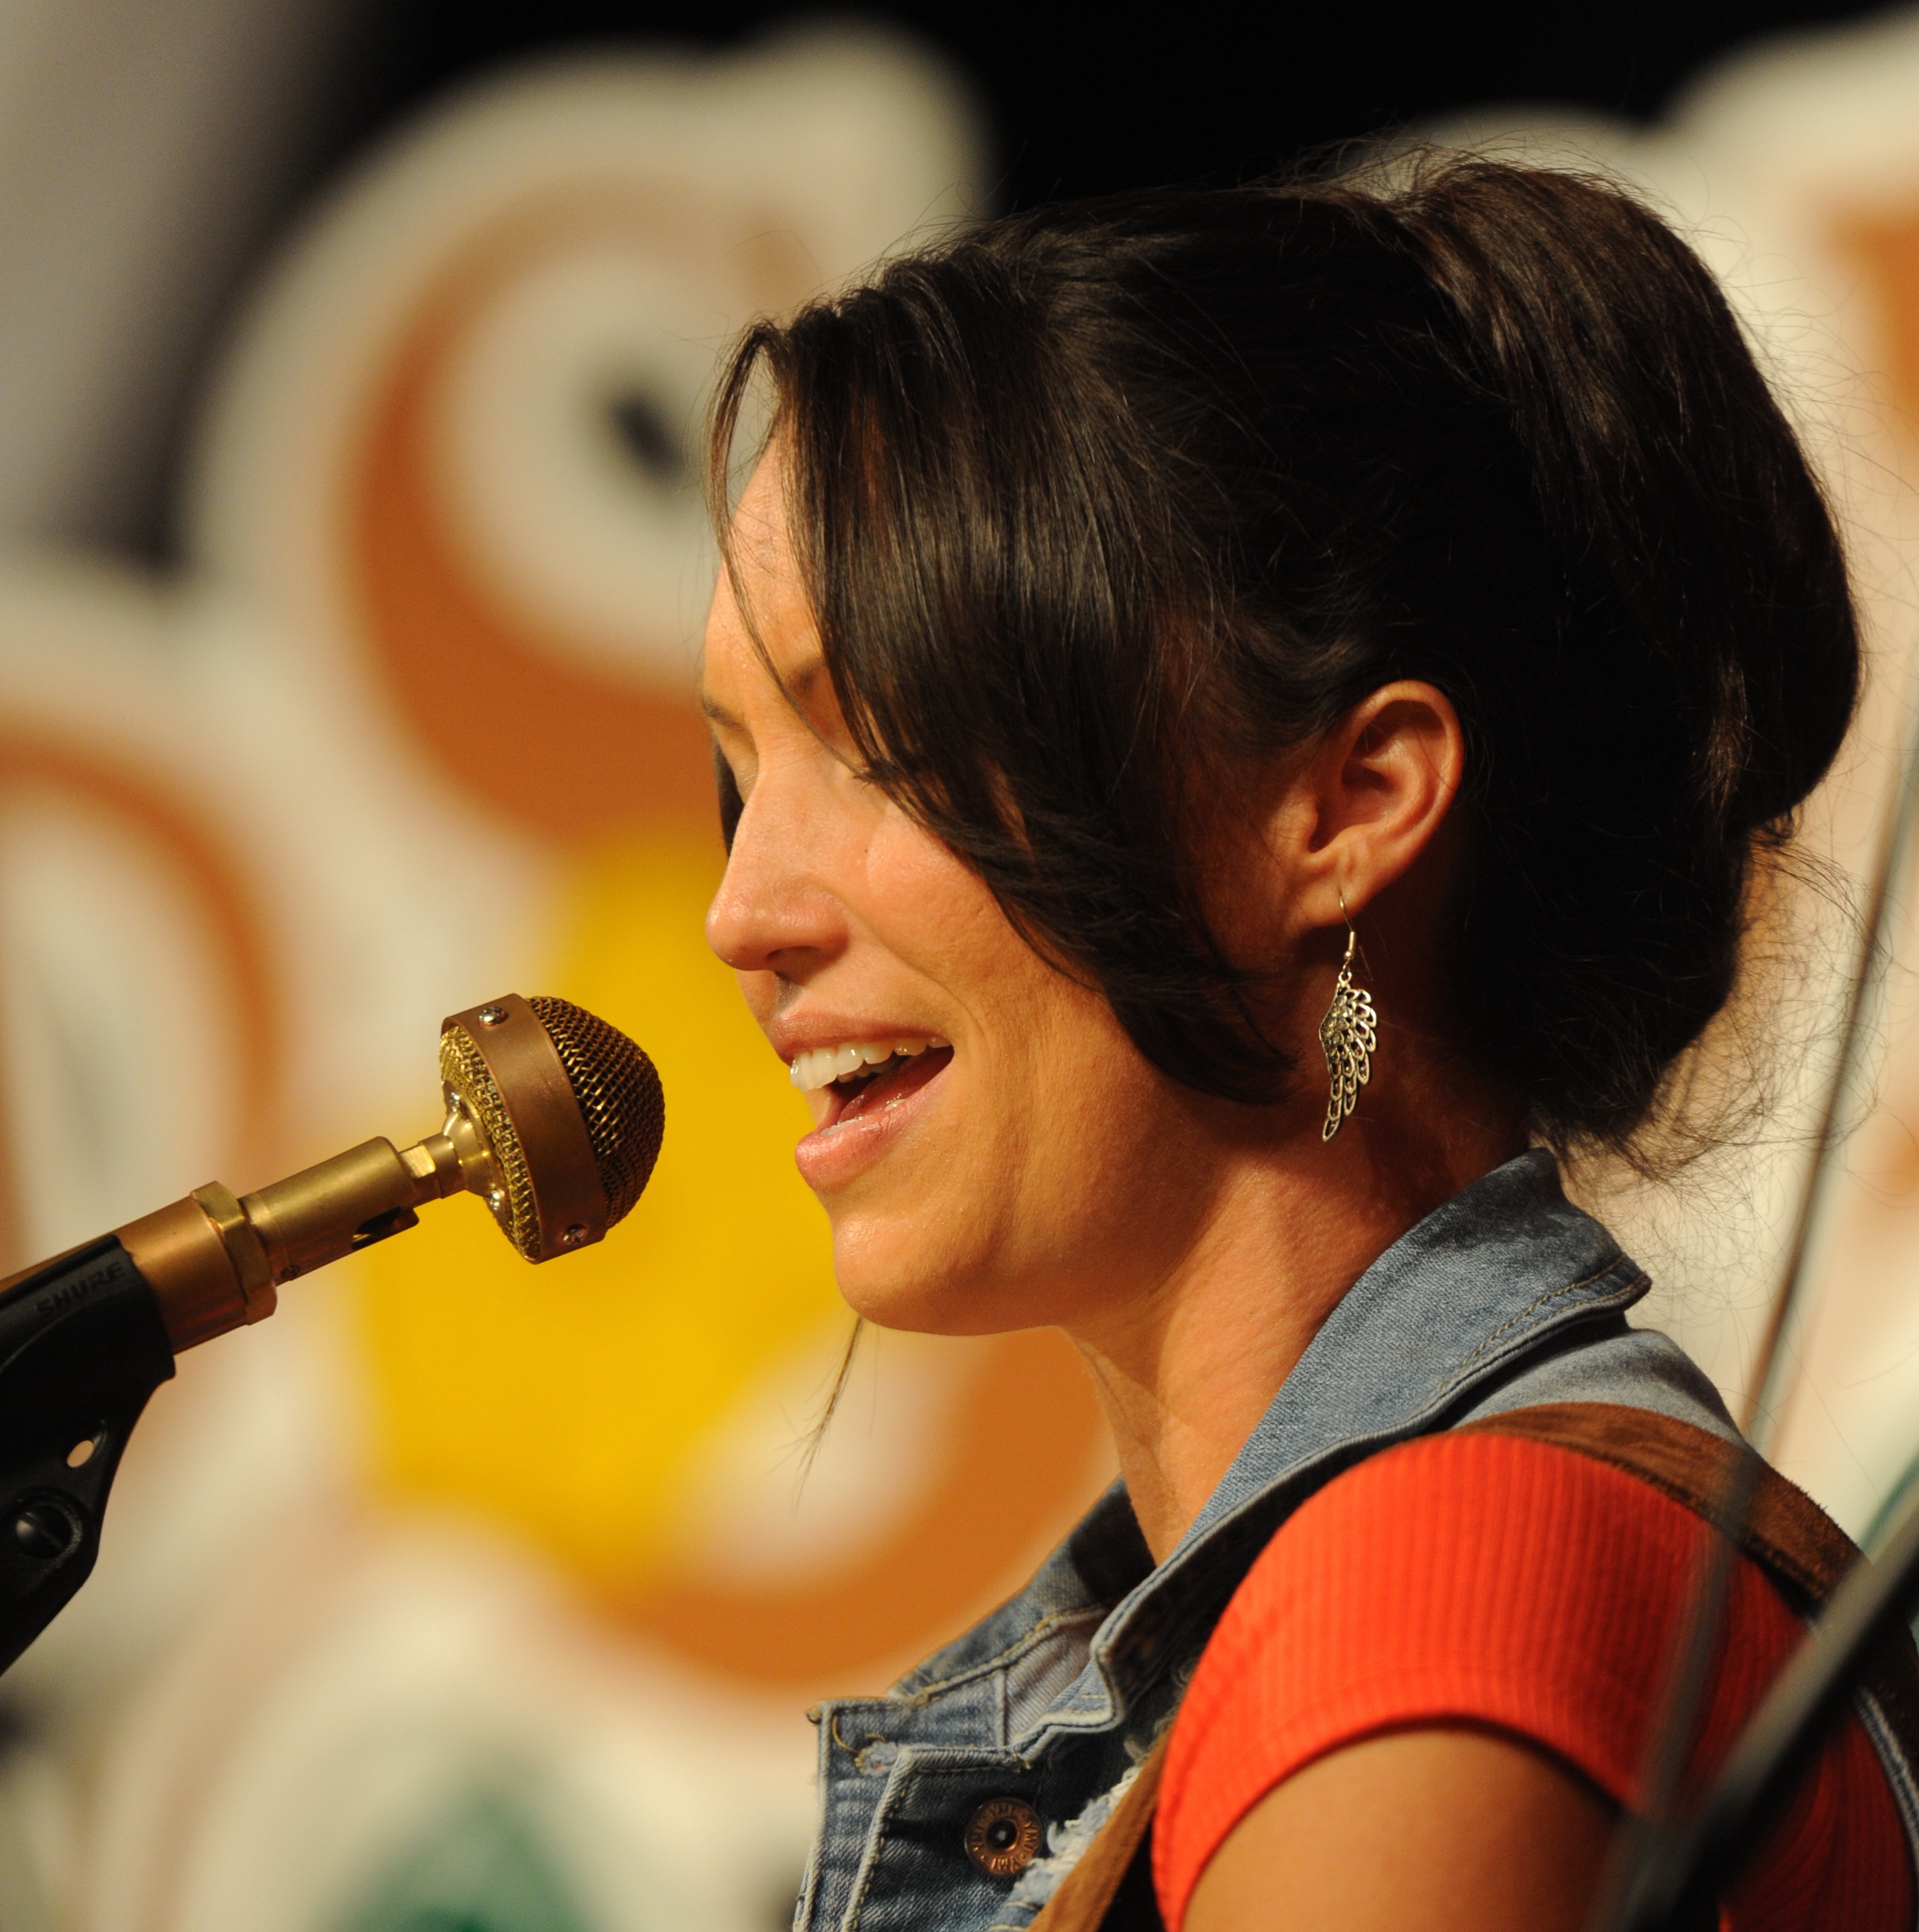 Caption: Kentucky country artist Sarah Patrick on the WoodSongs Stage.